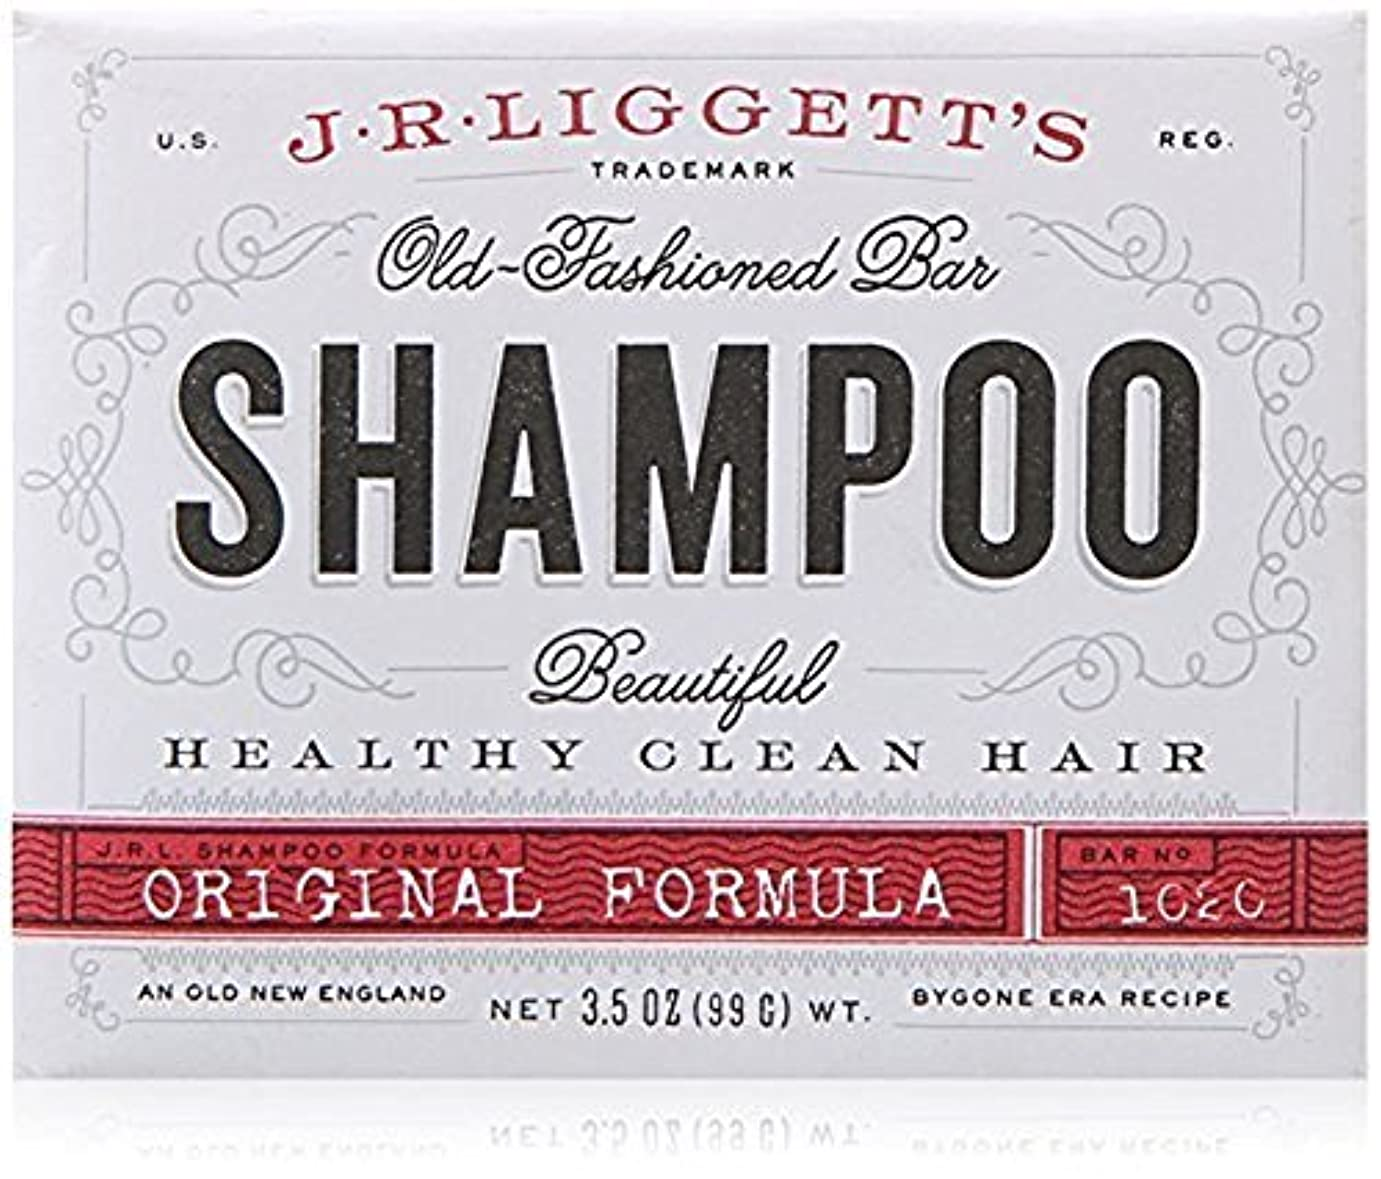 超高層ビル違反する法的x J.R.Liggett's Old-Fashioned Bar Shampoo The Original Formula - 3.5 oz by J.R. Liggett